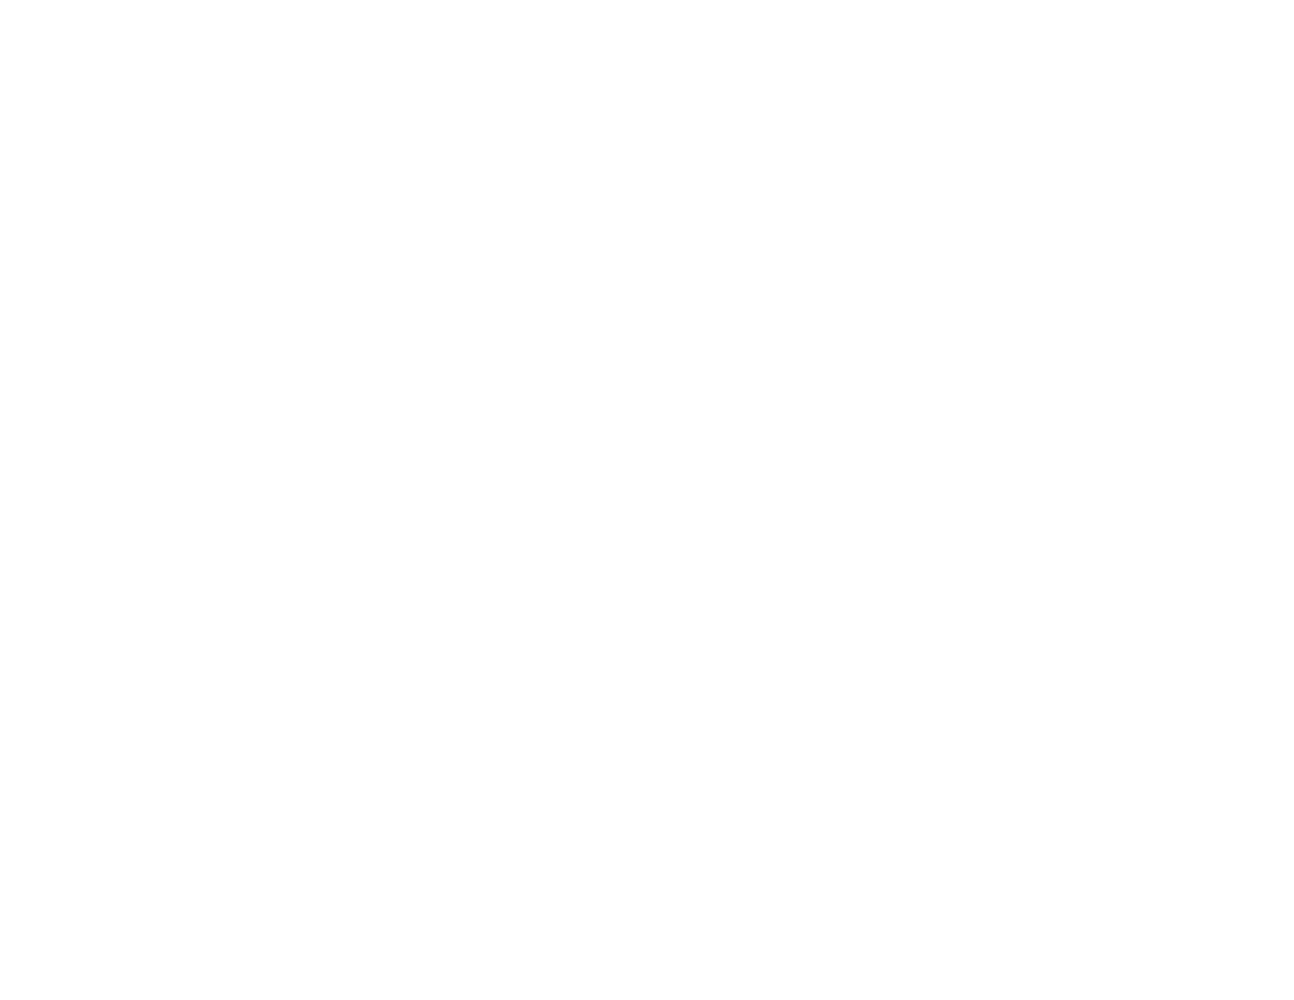 blank png